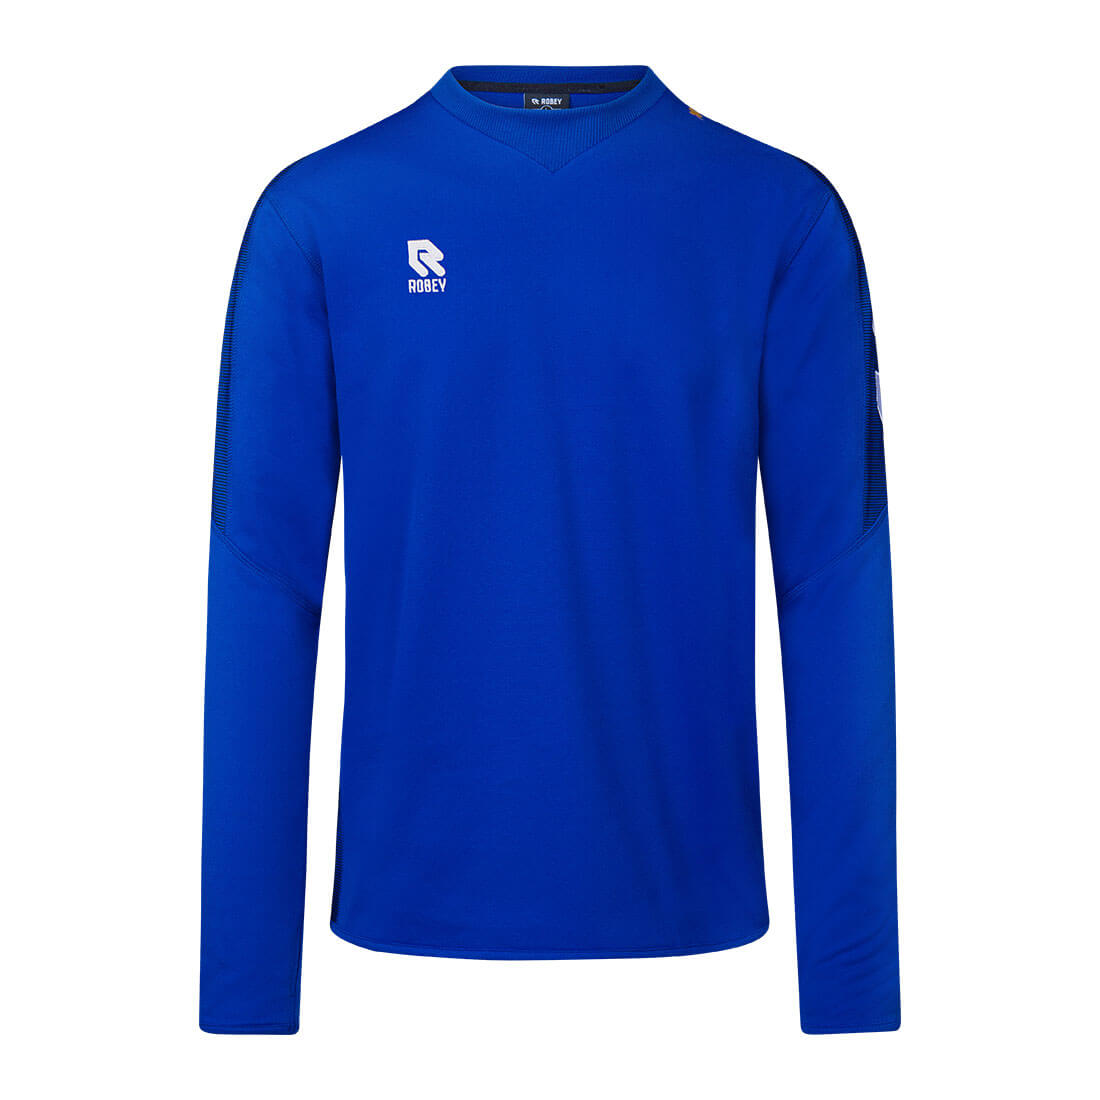 Robey Performance Sweater - Royal Blue